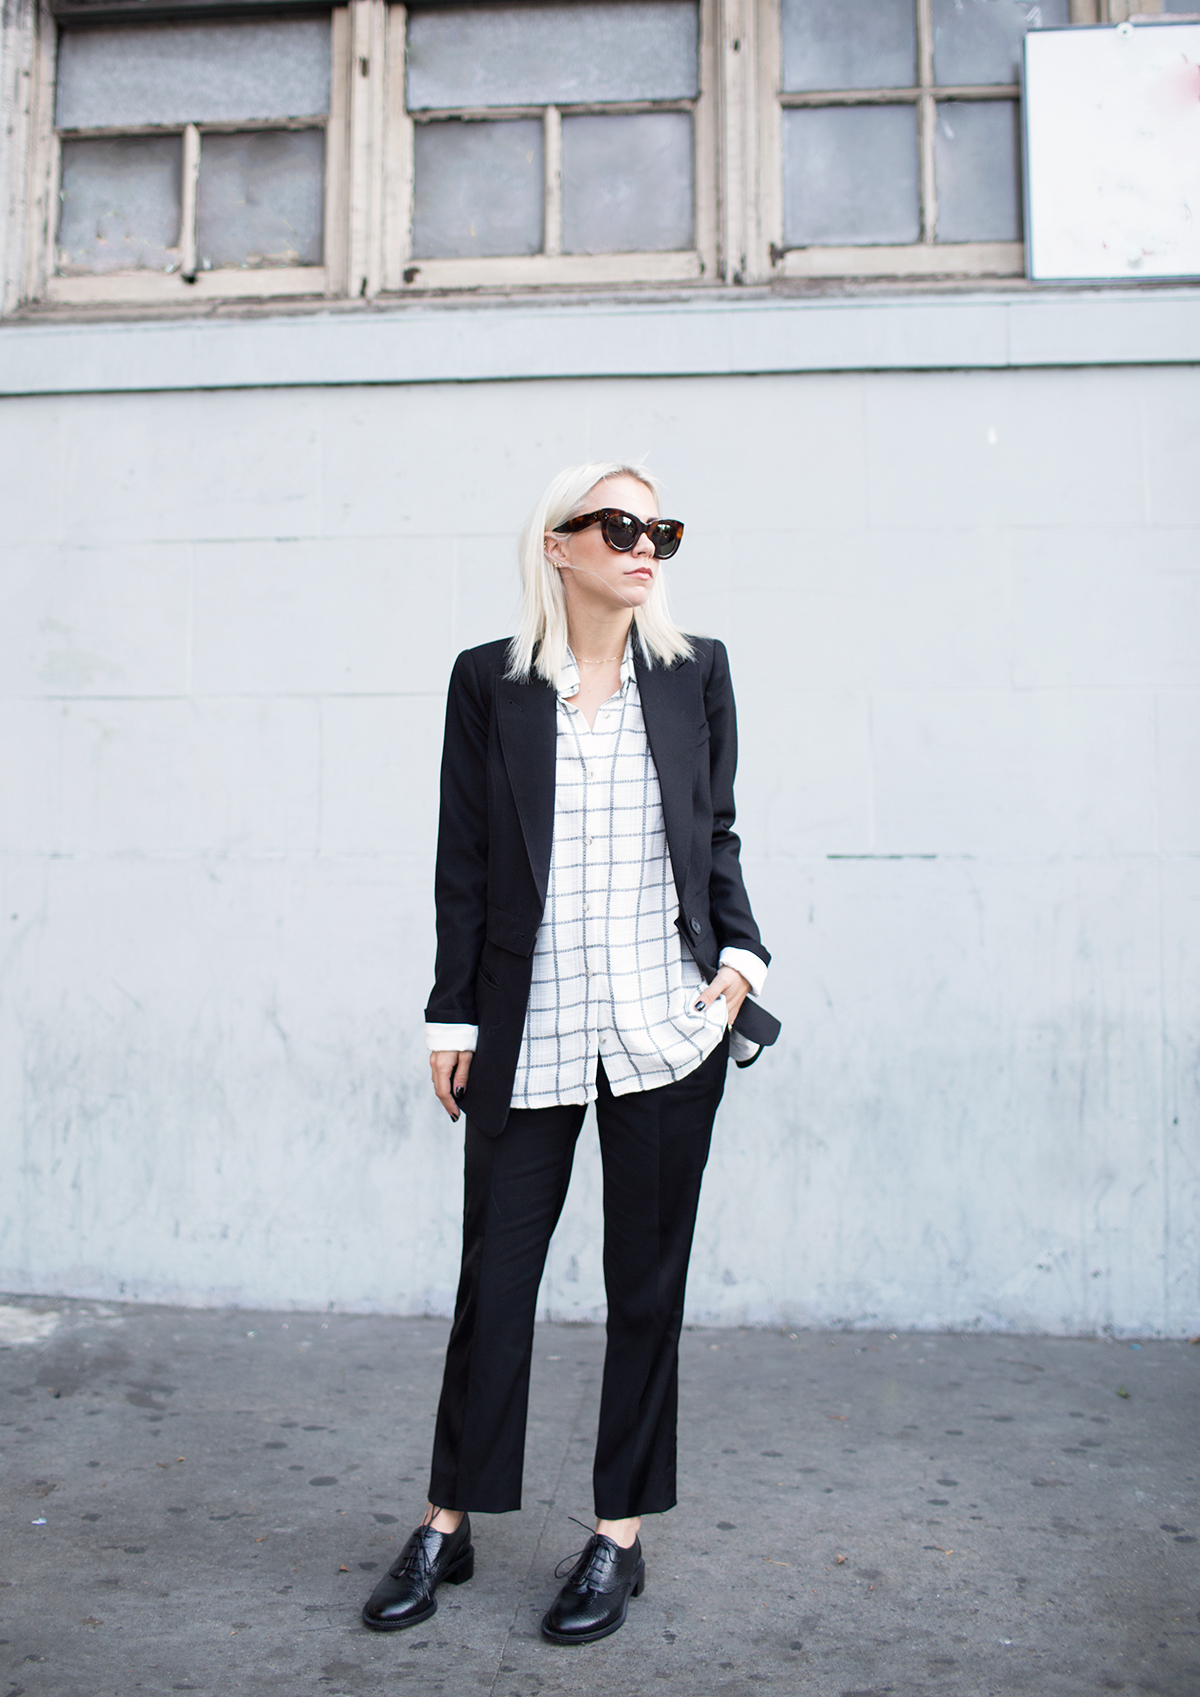 The grid print trend is coming up big. Courtney Trop is wearing a grid print Oxford shirt from Myne